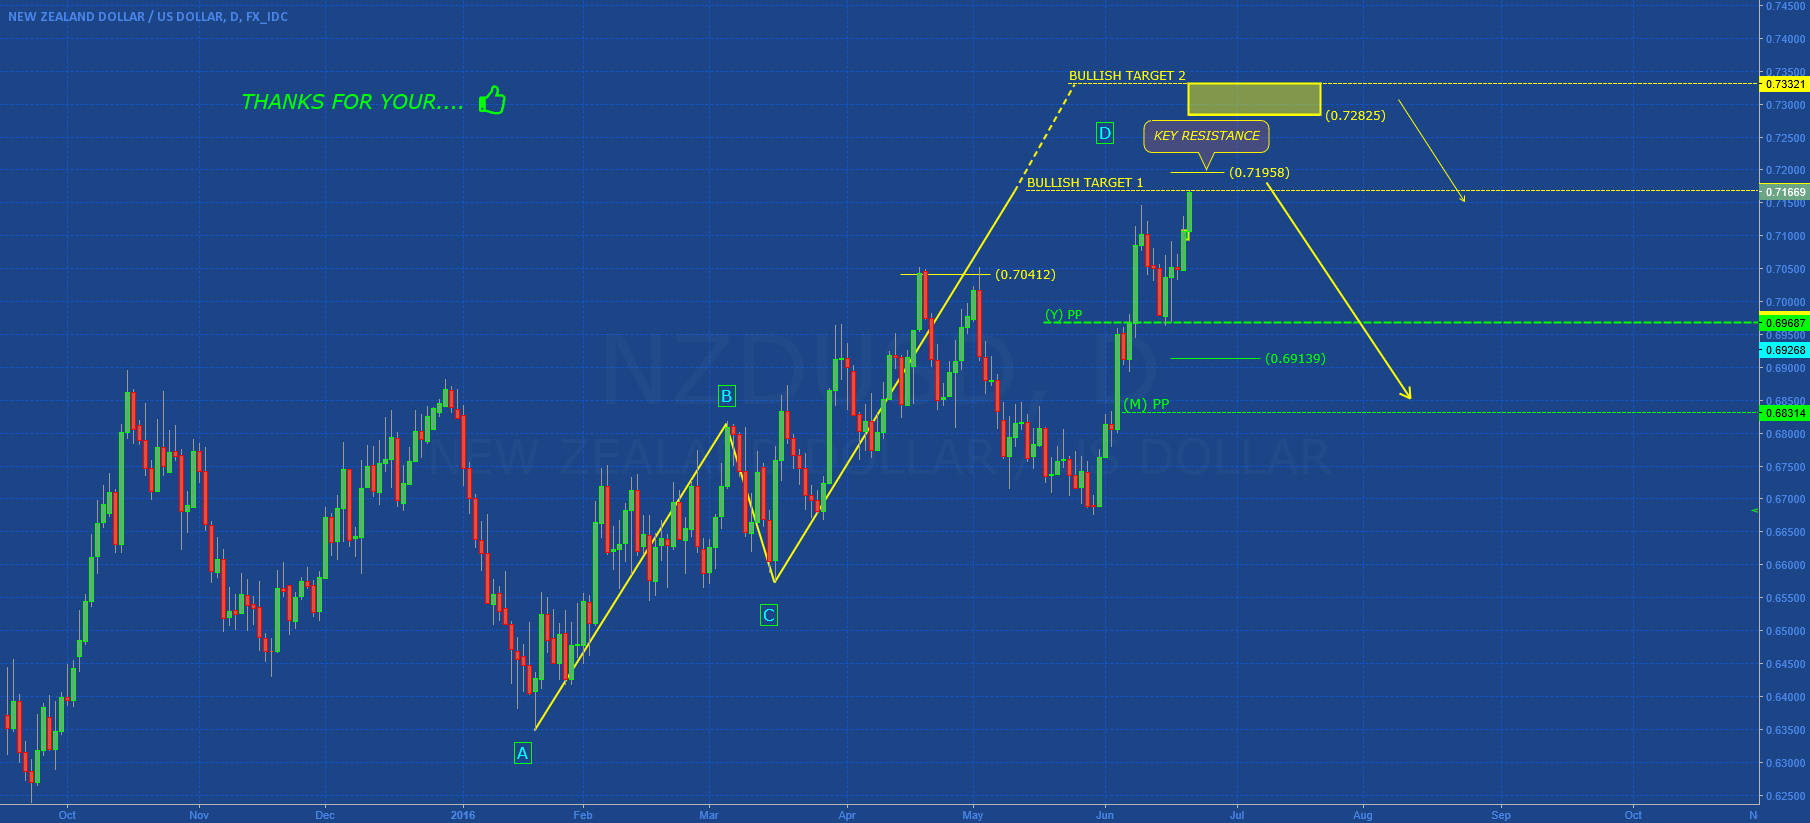 NZDUSD: SELL ON OUR BULLISH TARGET?